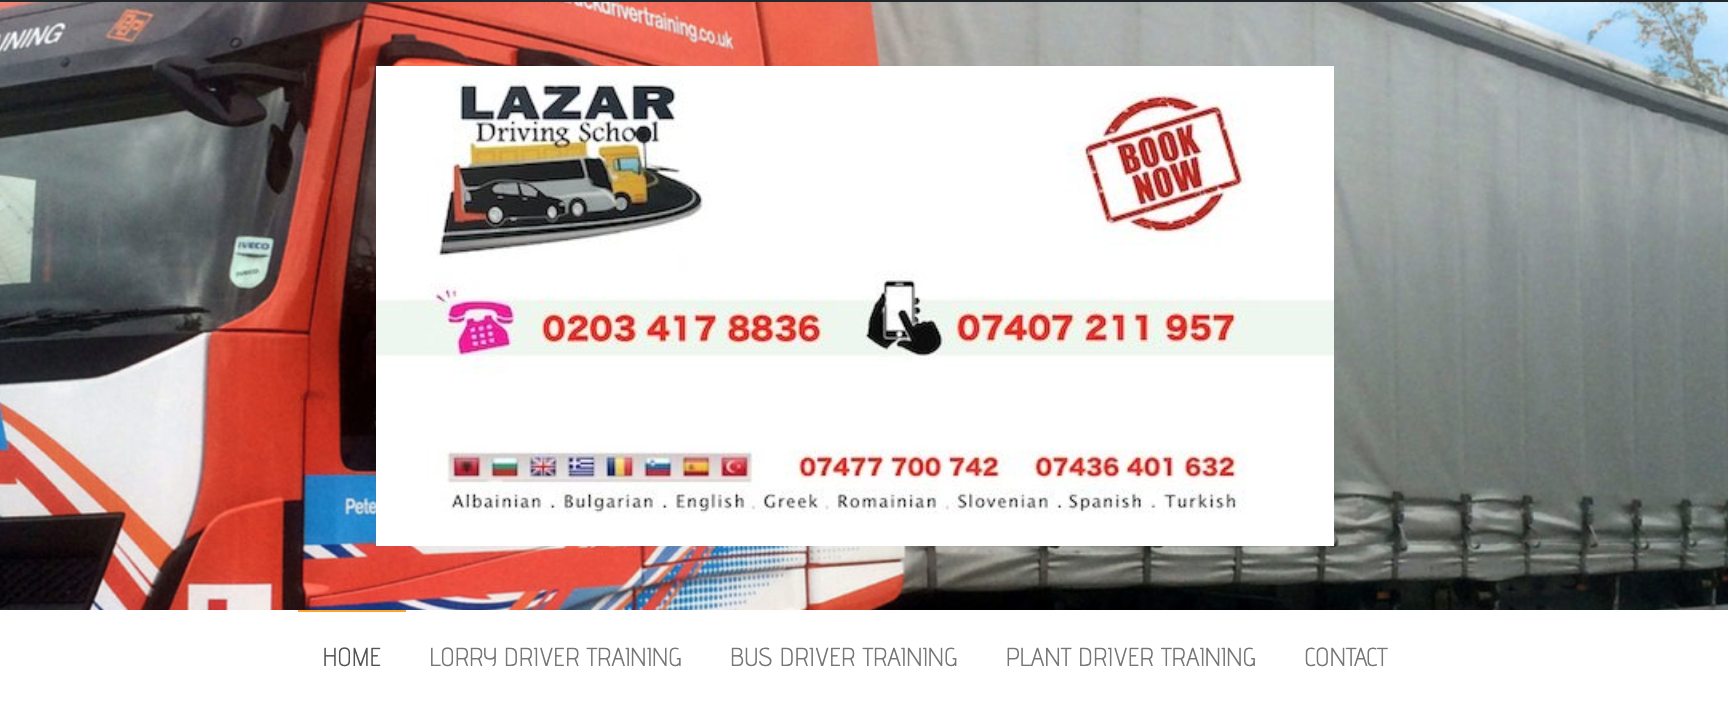 Lazar Driving School